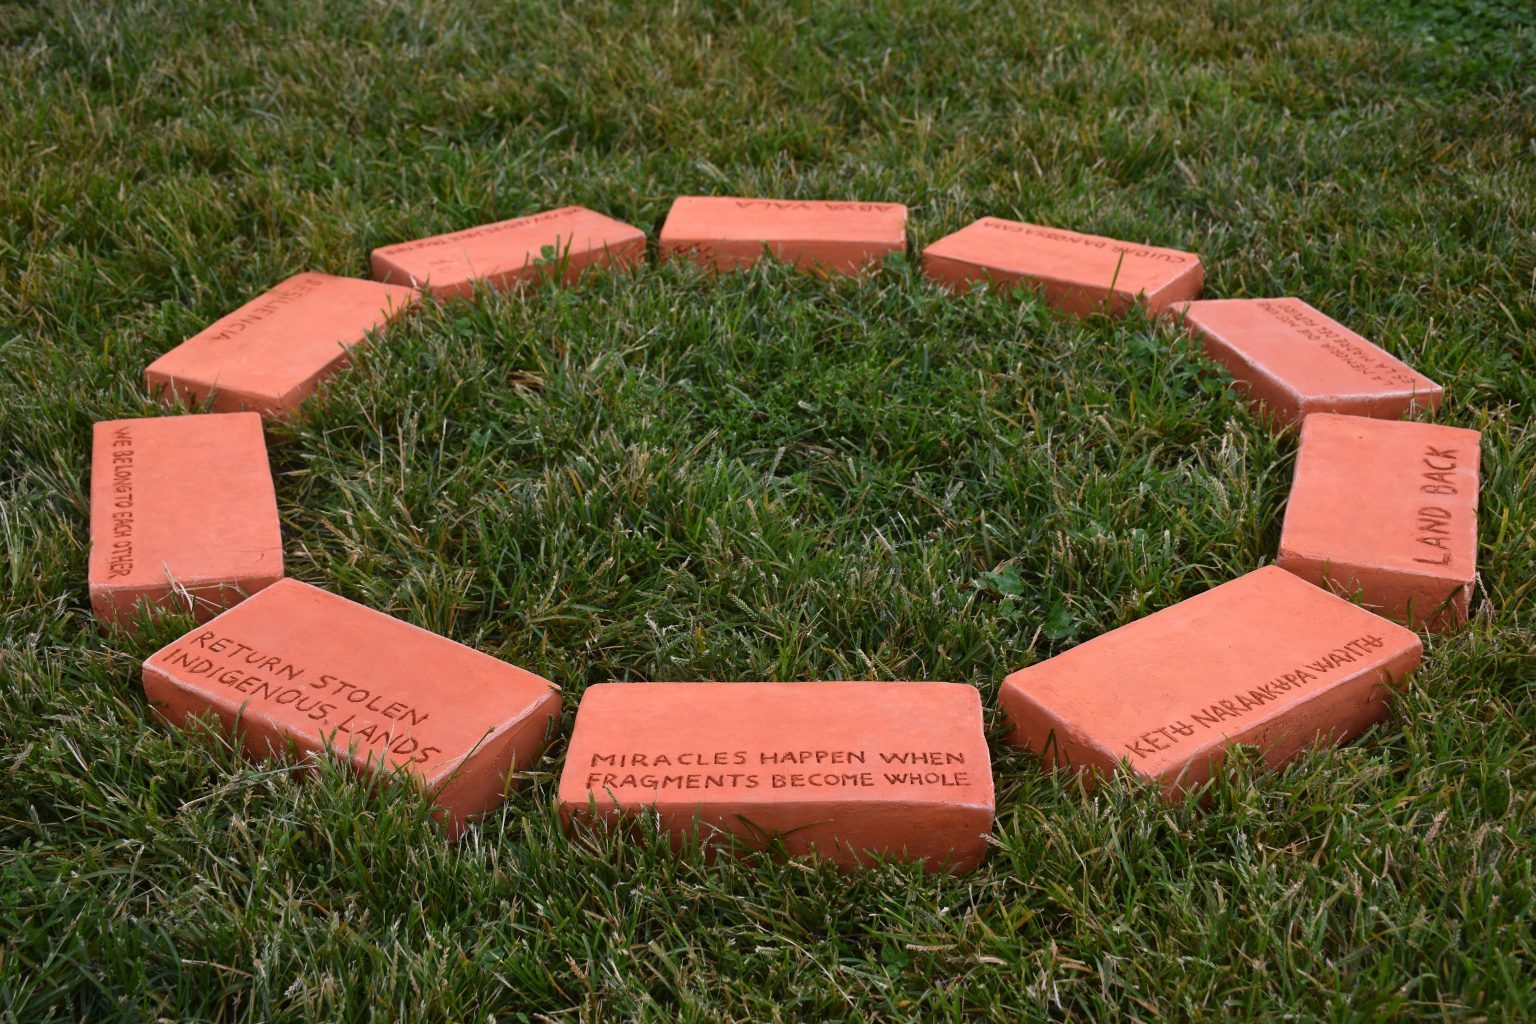 Socrates Sculpture Park Reveals New Monument Series in October